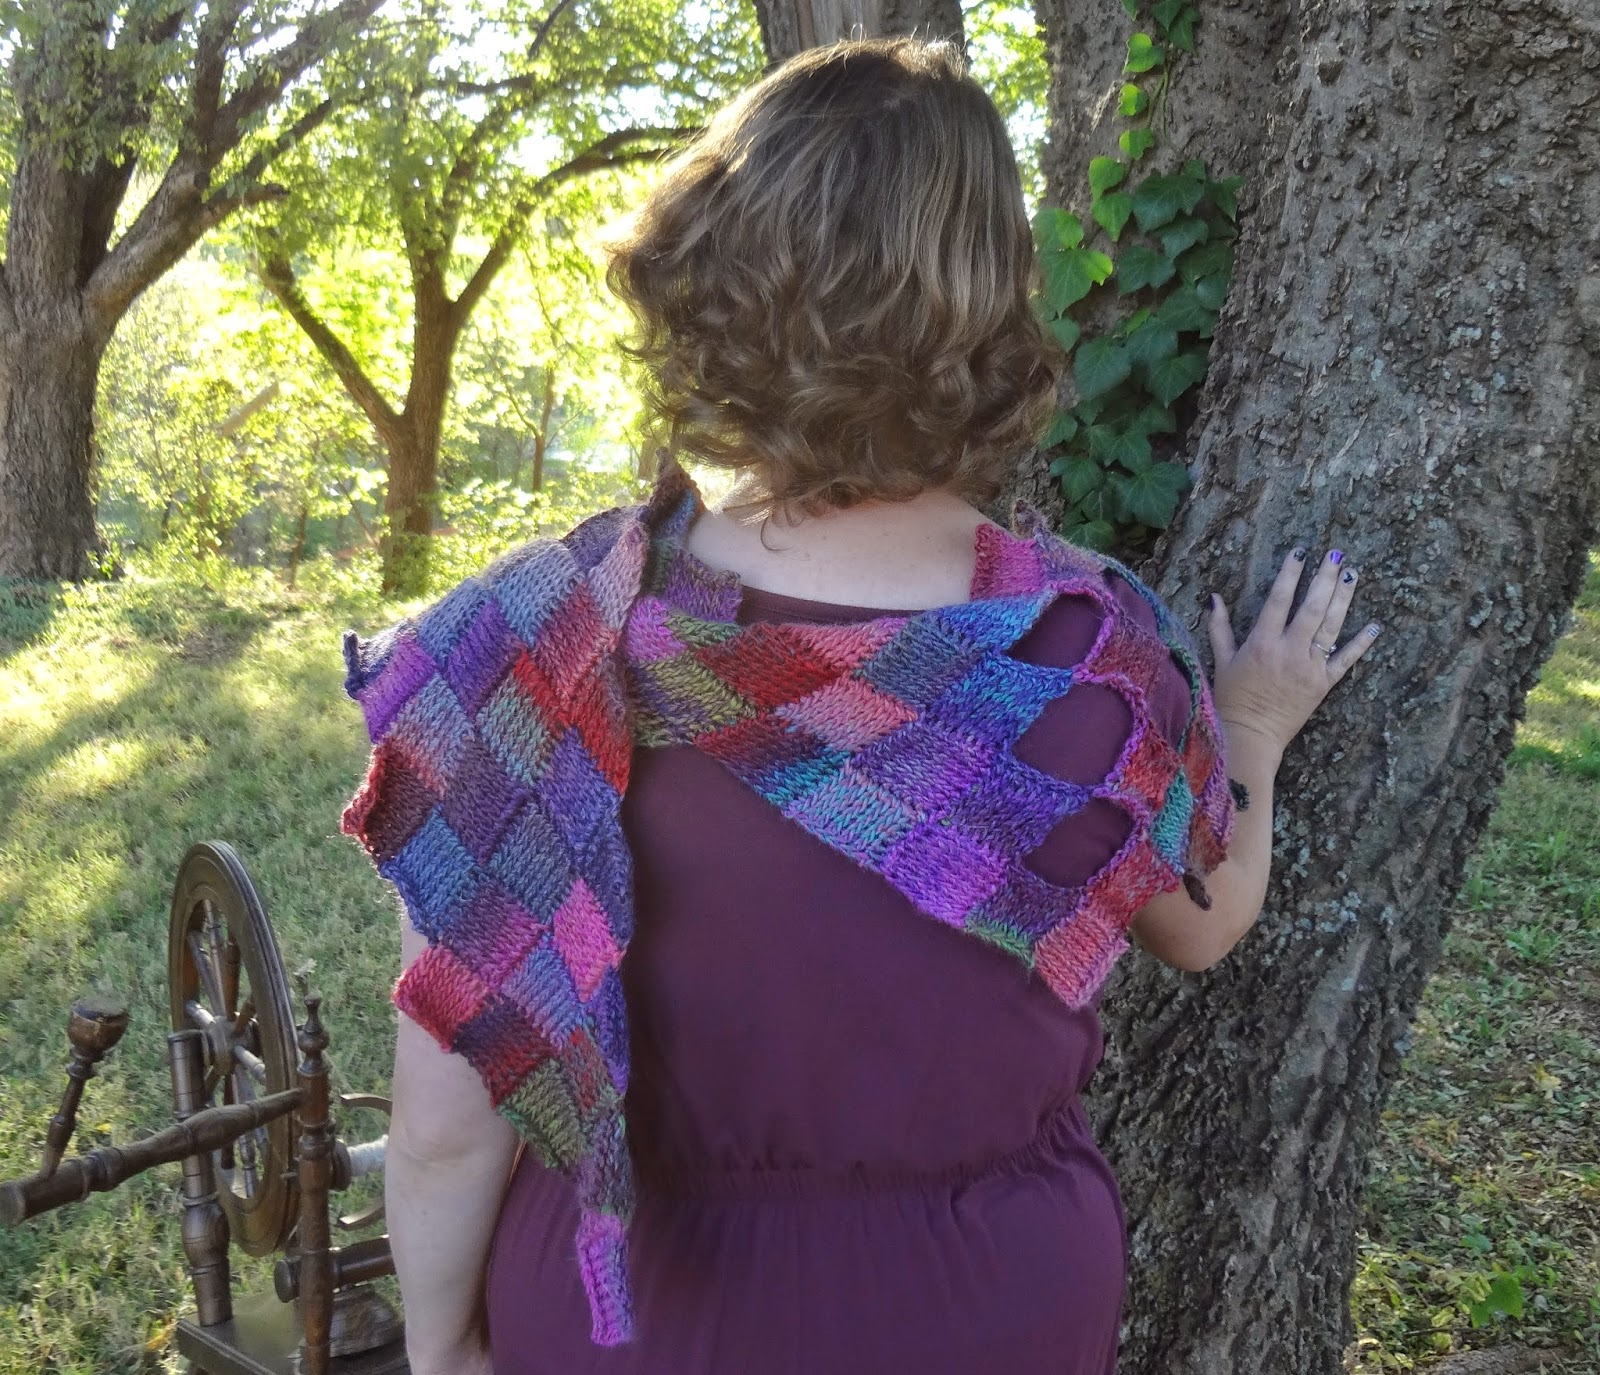 Woman wearing the Tunisian crochet entrelac On Fire Wrap and maroon dress, standing in the woods.